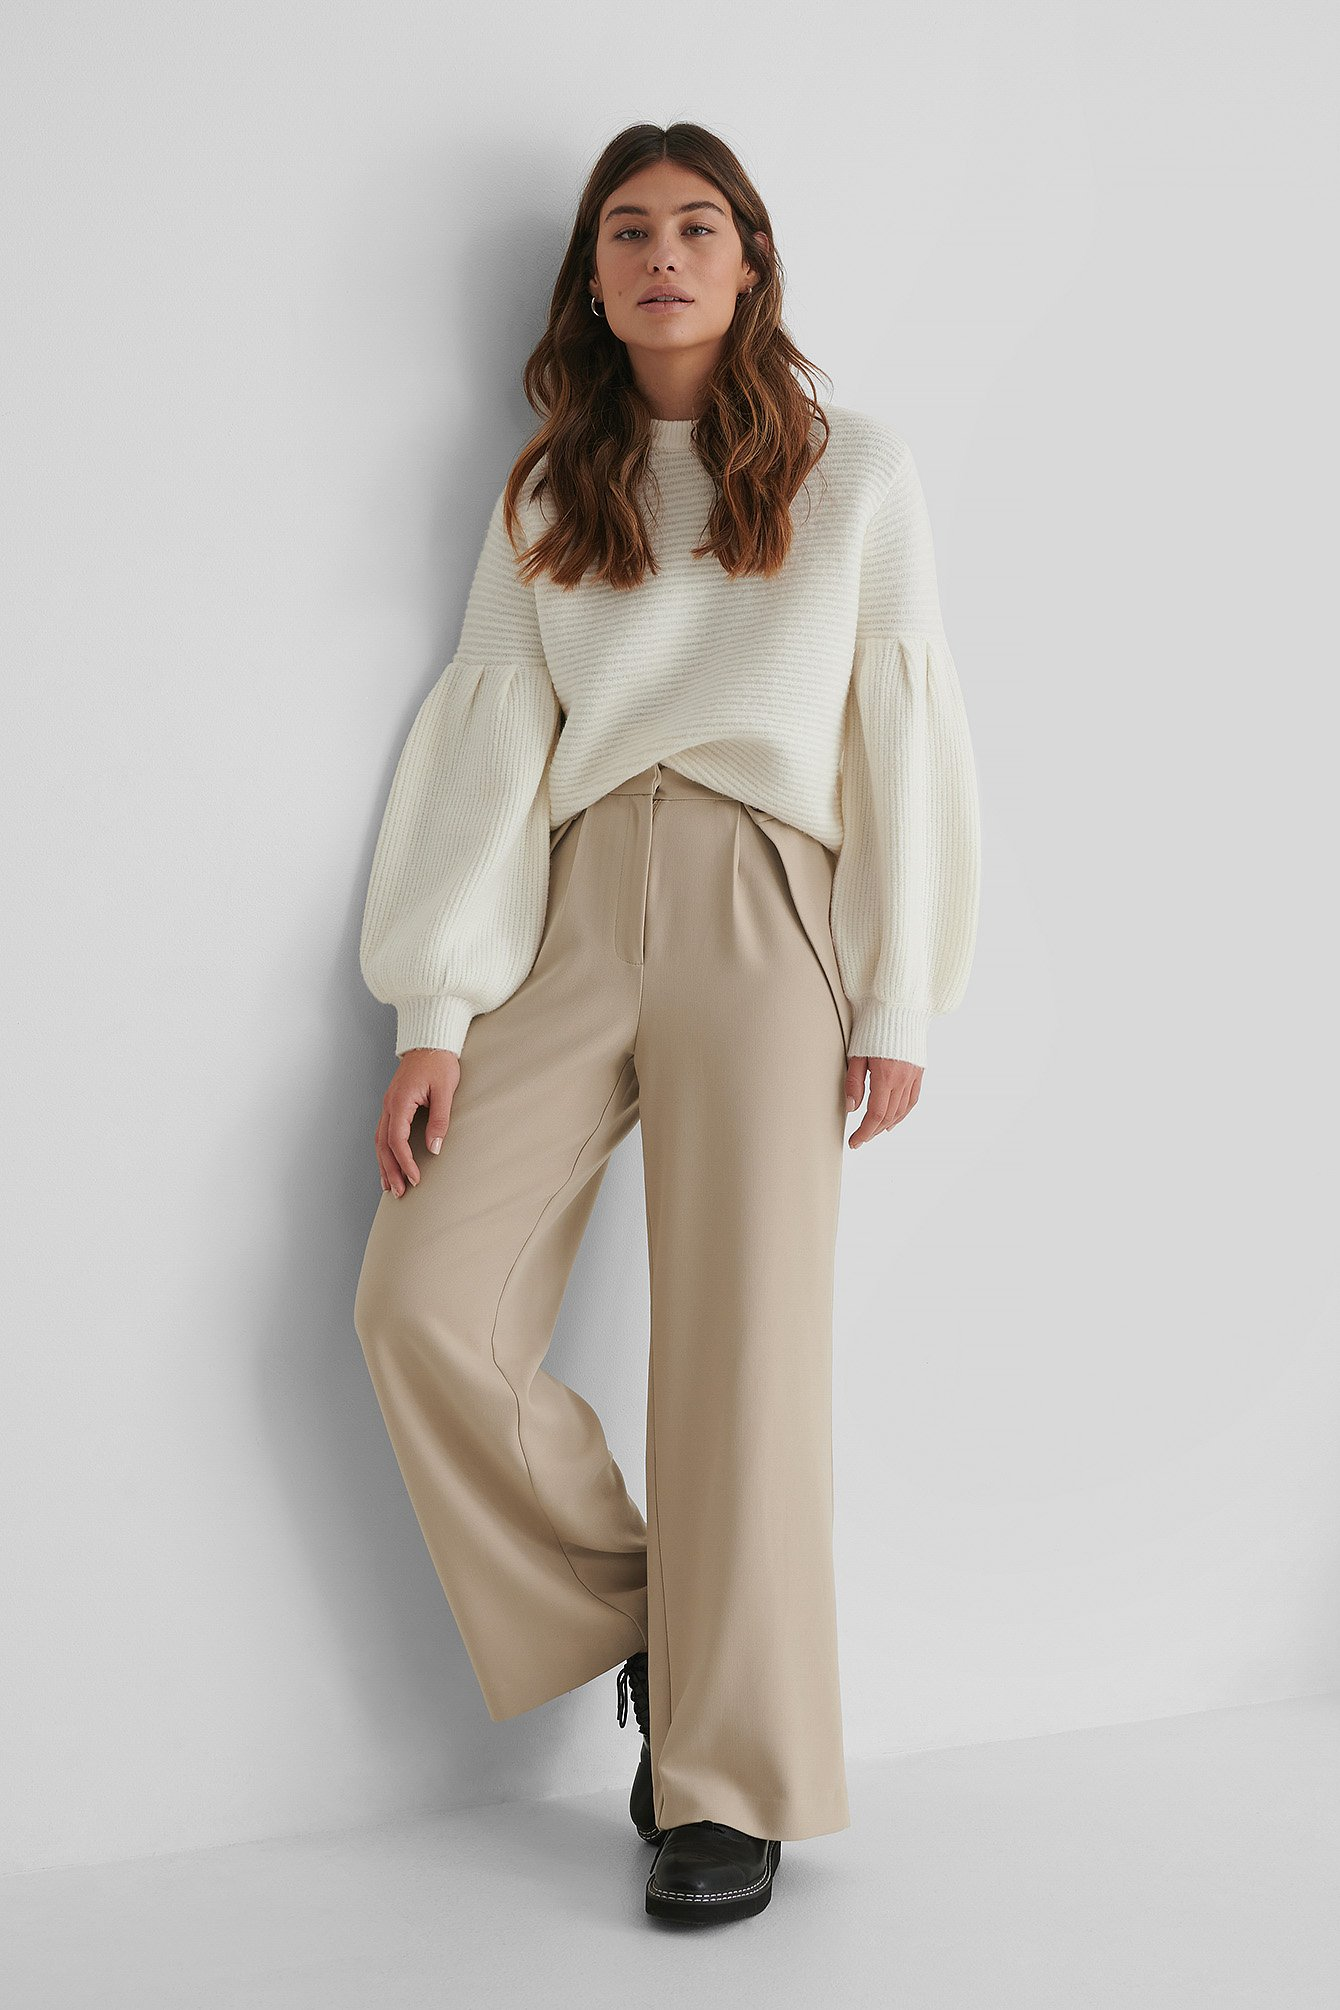 the fashion fraction x na-kd -  Anzughose Mit Hoher Taille - Beige